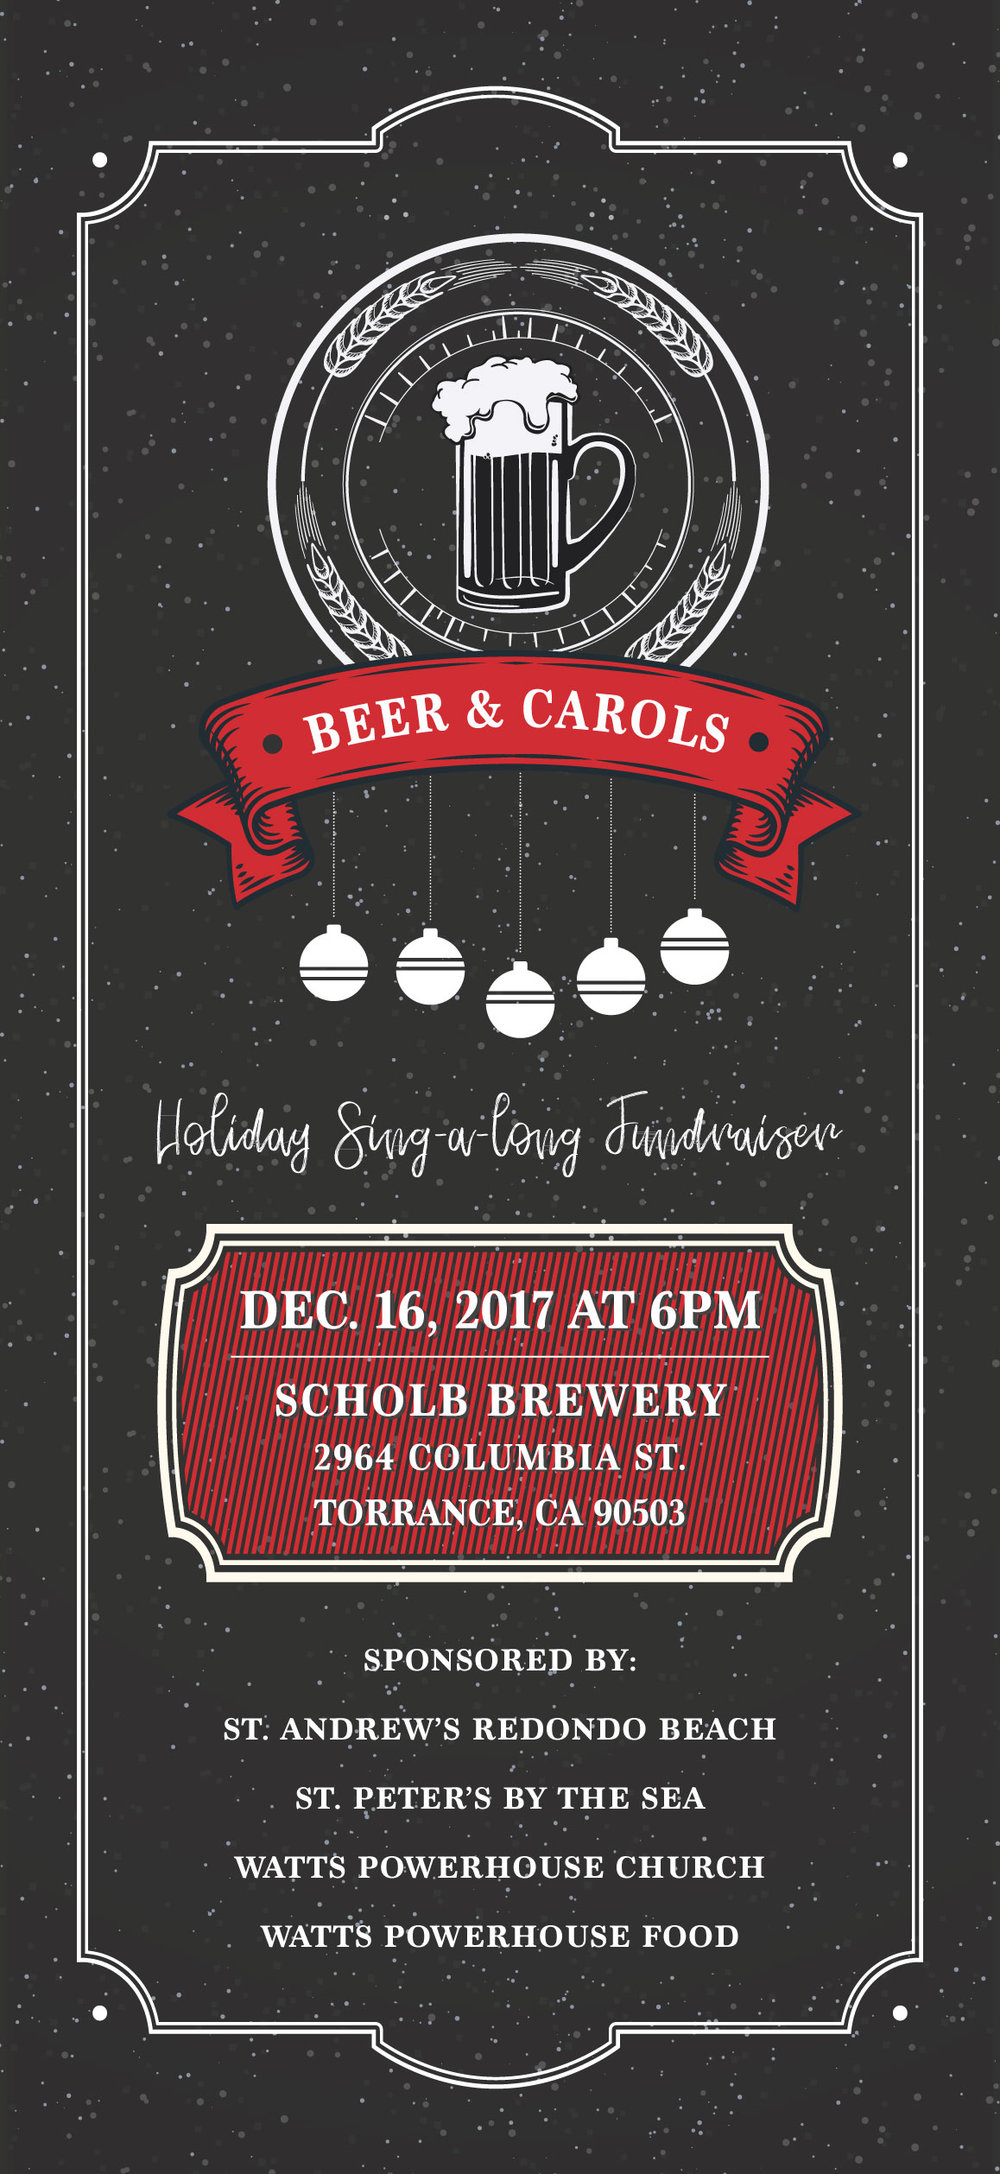 Beer & Carols (rack card).jpg